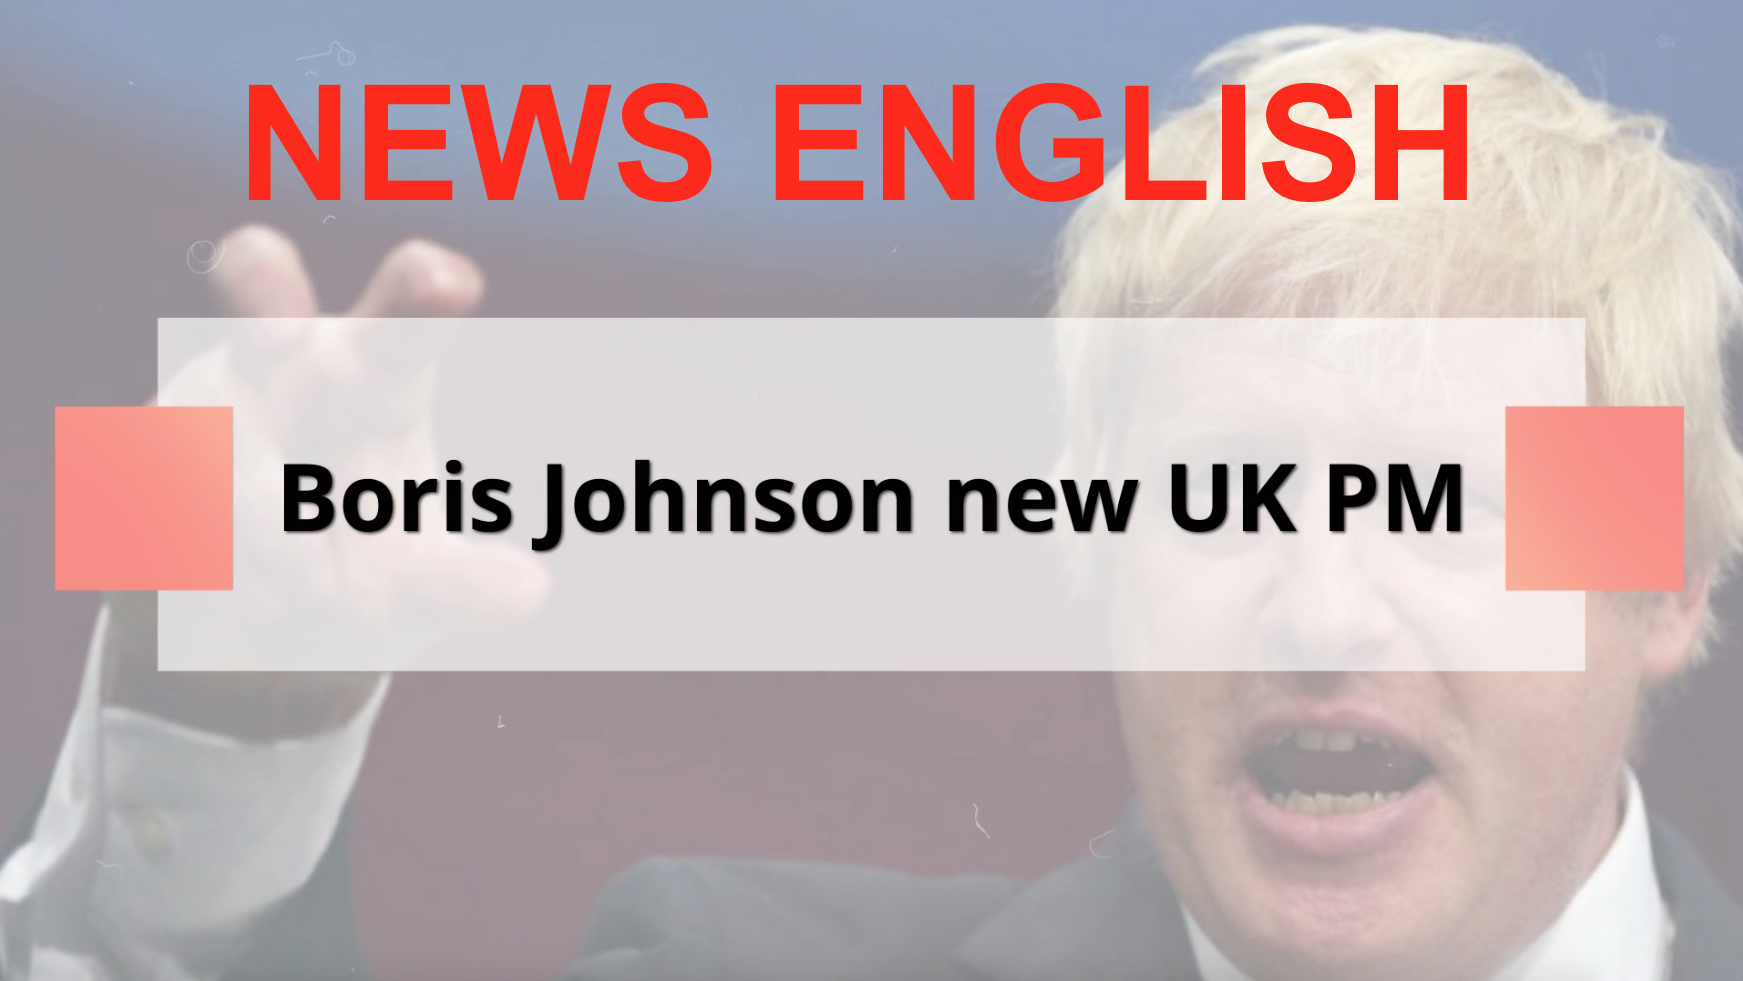 JOHNSON NEW UK PM